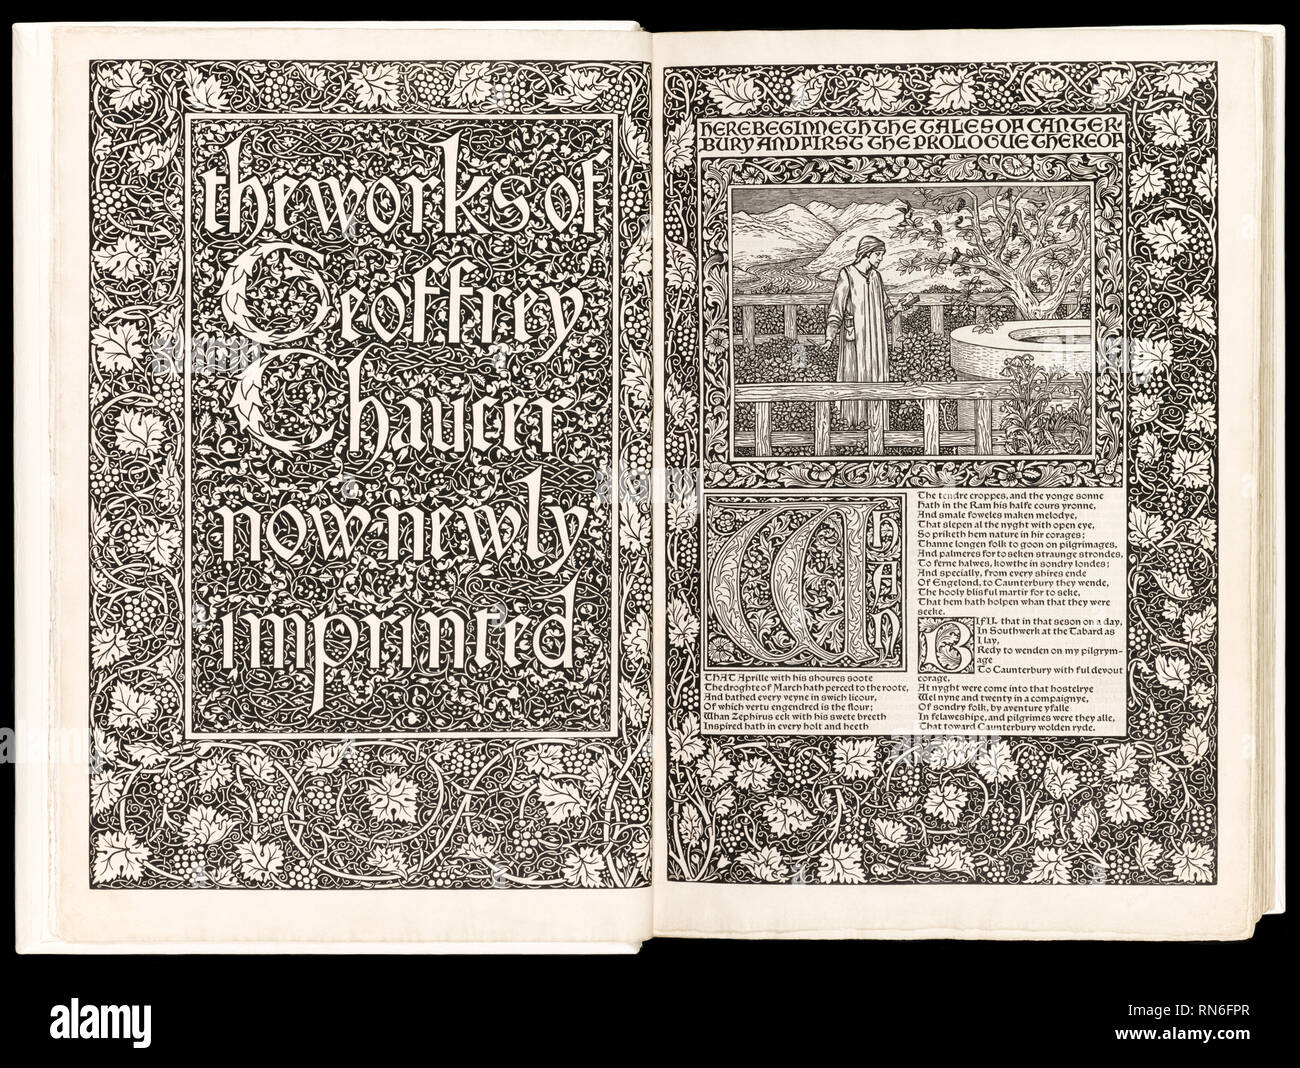 'The Works of Geoffrey Chaucer Now Newly Imprinted' by Geoffrey Chaucer (1343-1400) featuring woodcuts by Edward Burne-Jones (1833-1898) and printed on Batchelor handmade paper, published by Kelmscott Press in 1896. - Stock Image